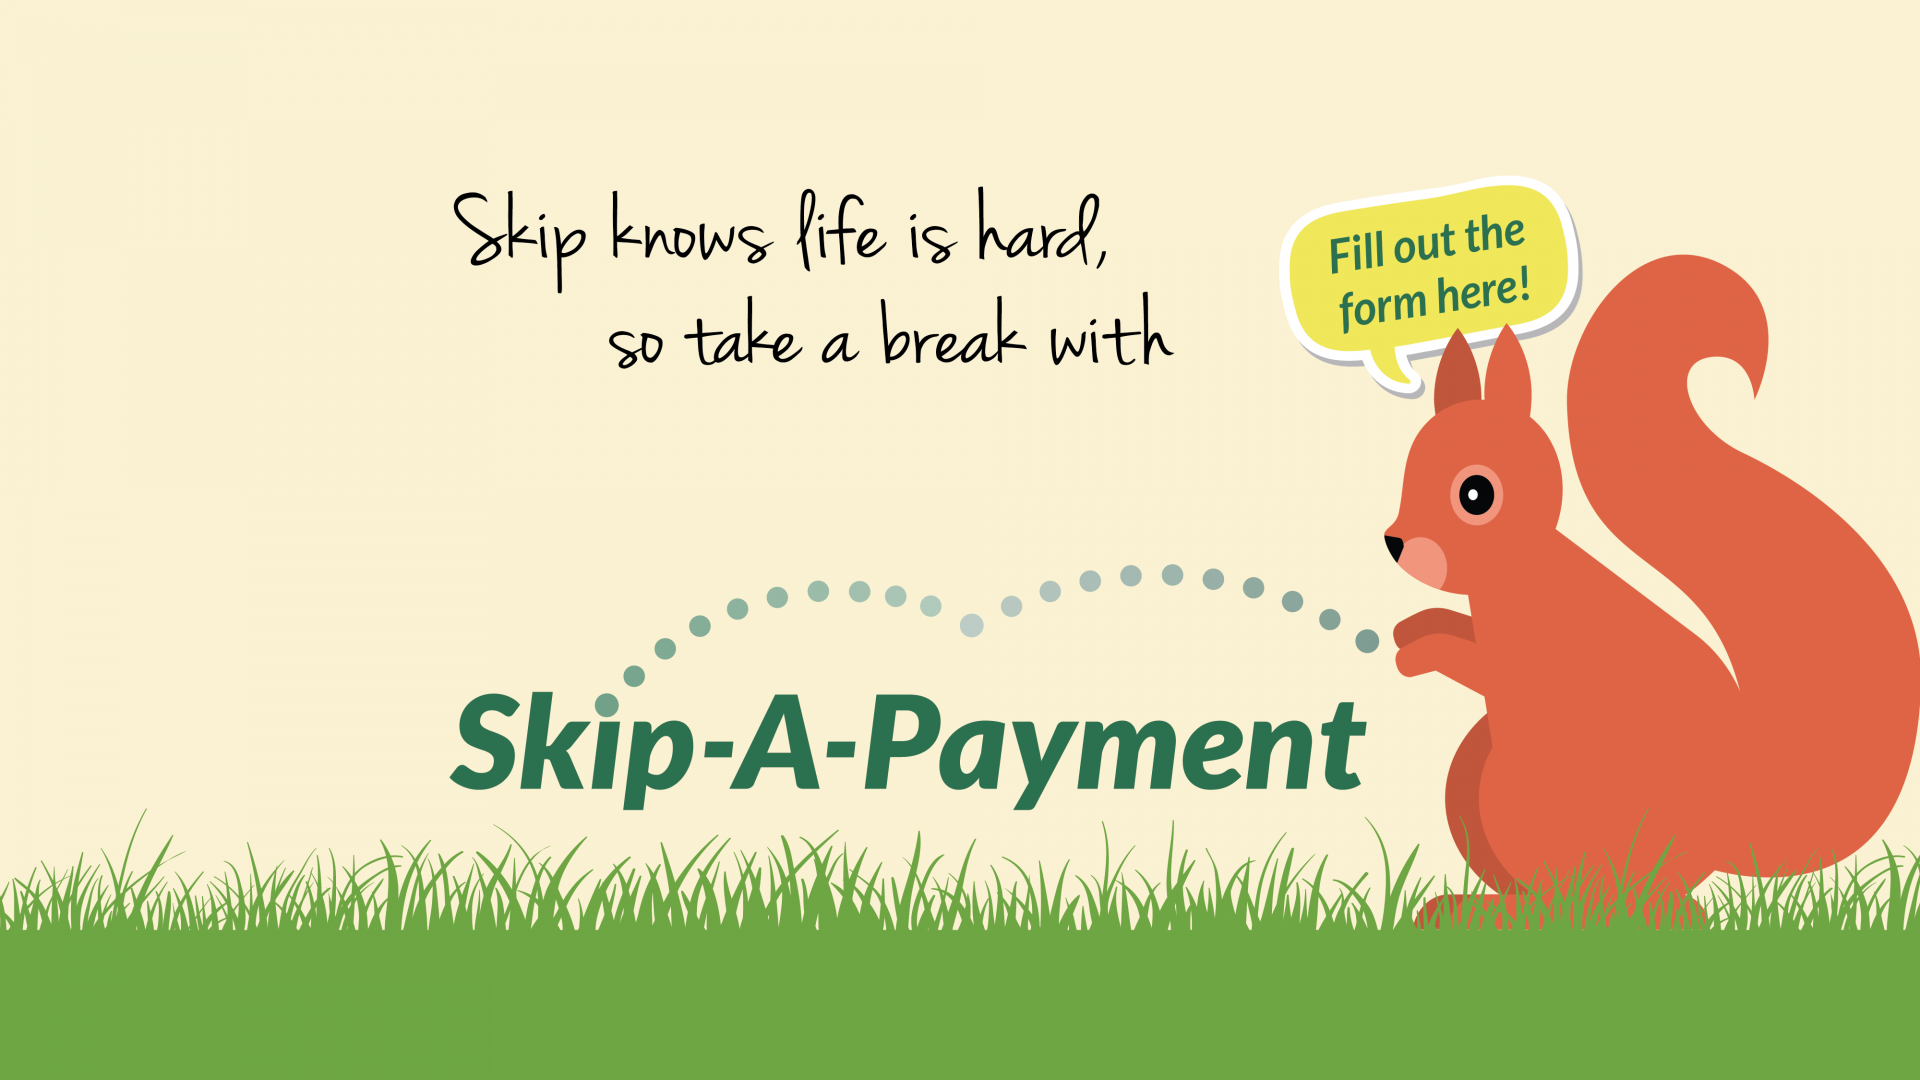 Squirel and grass says Skip knows life is hard, so take a break with Skip-a-Payment. Click here to fill out the form!